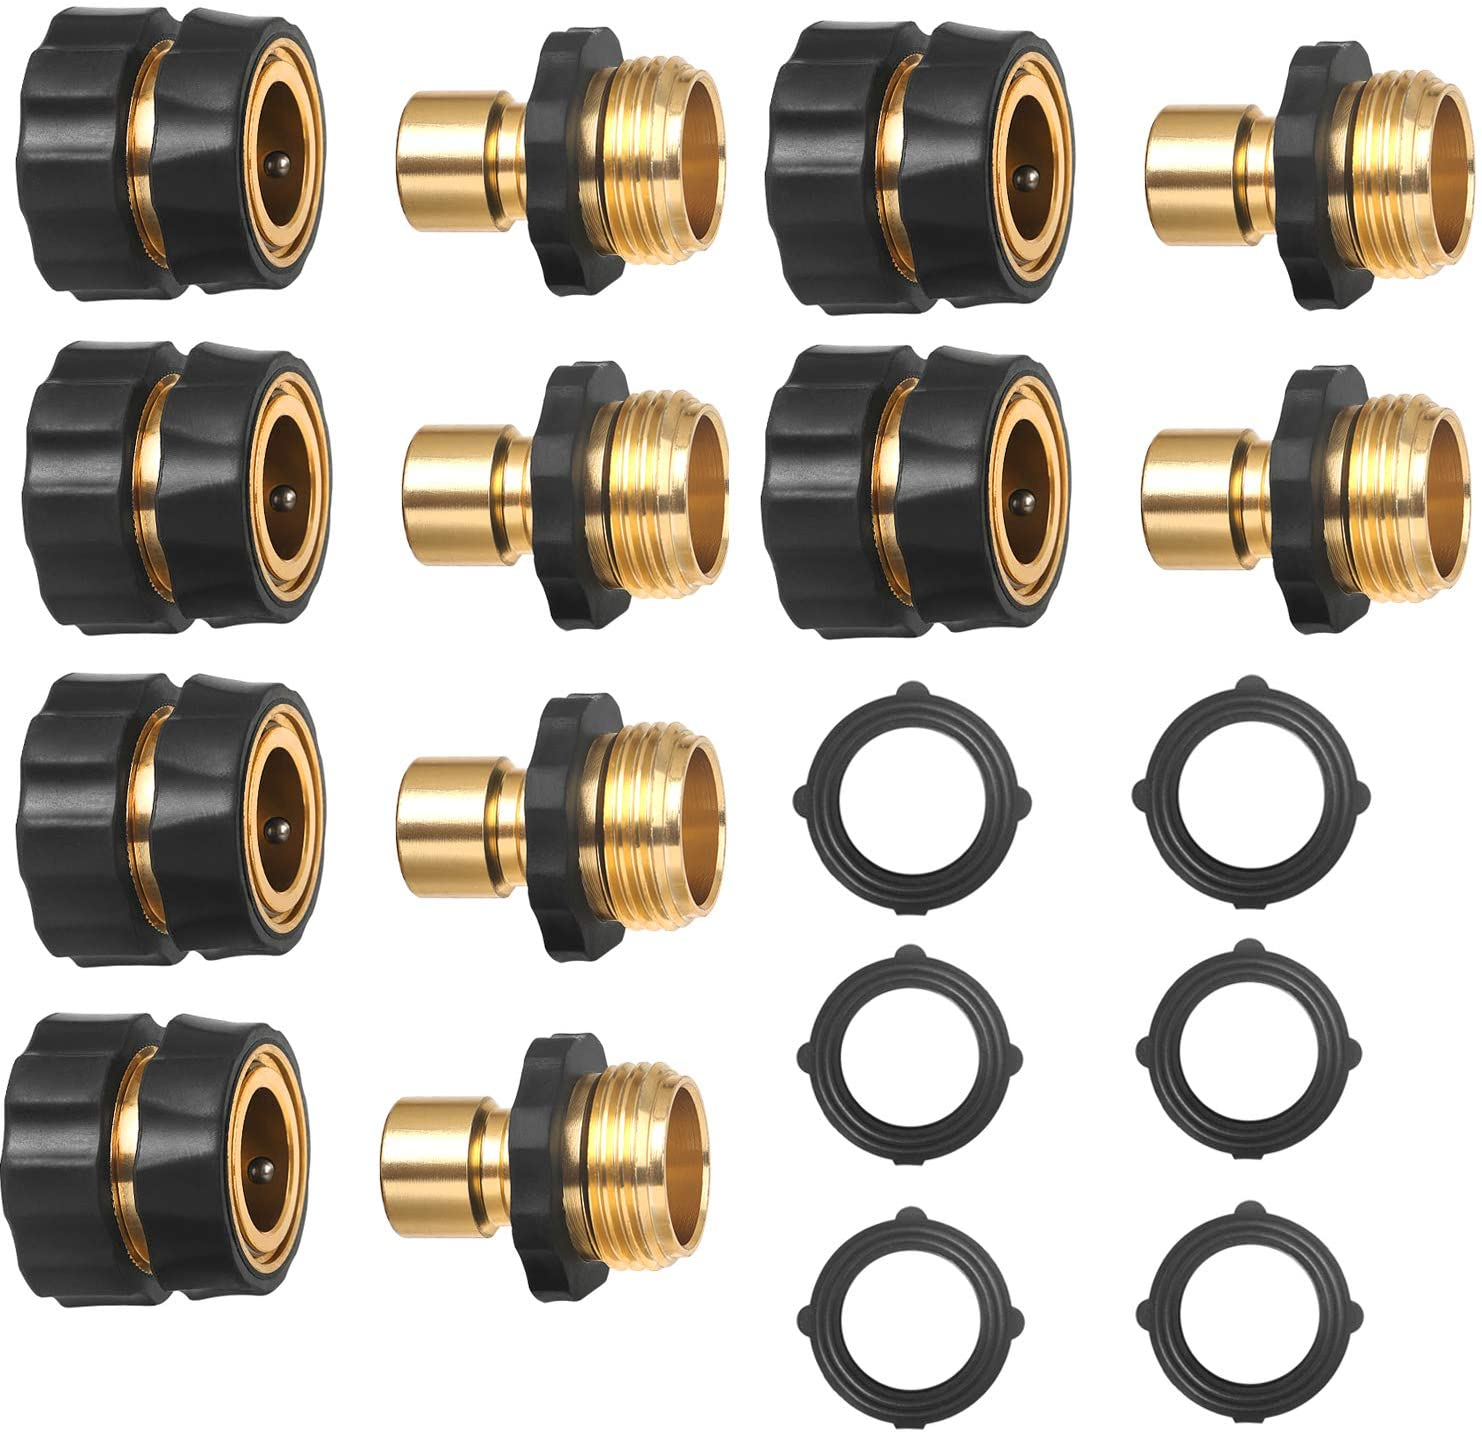 3/4 Inch Garden Aluminum Hose Fitting Quick Connector Male and Female Value Pack - No-Leaks Water Hoses Quick Connect Release, 6 Set, with 6 Sealed O-Rings